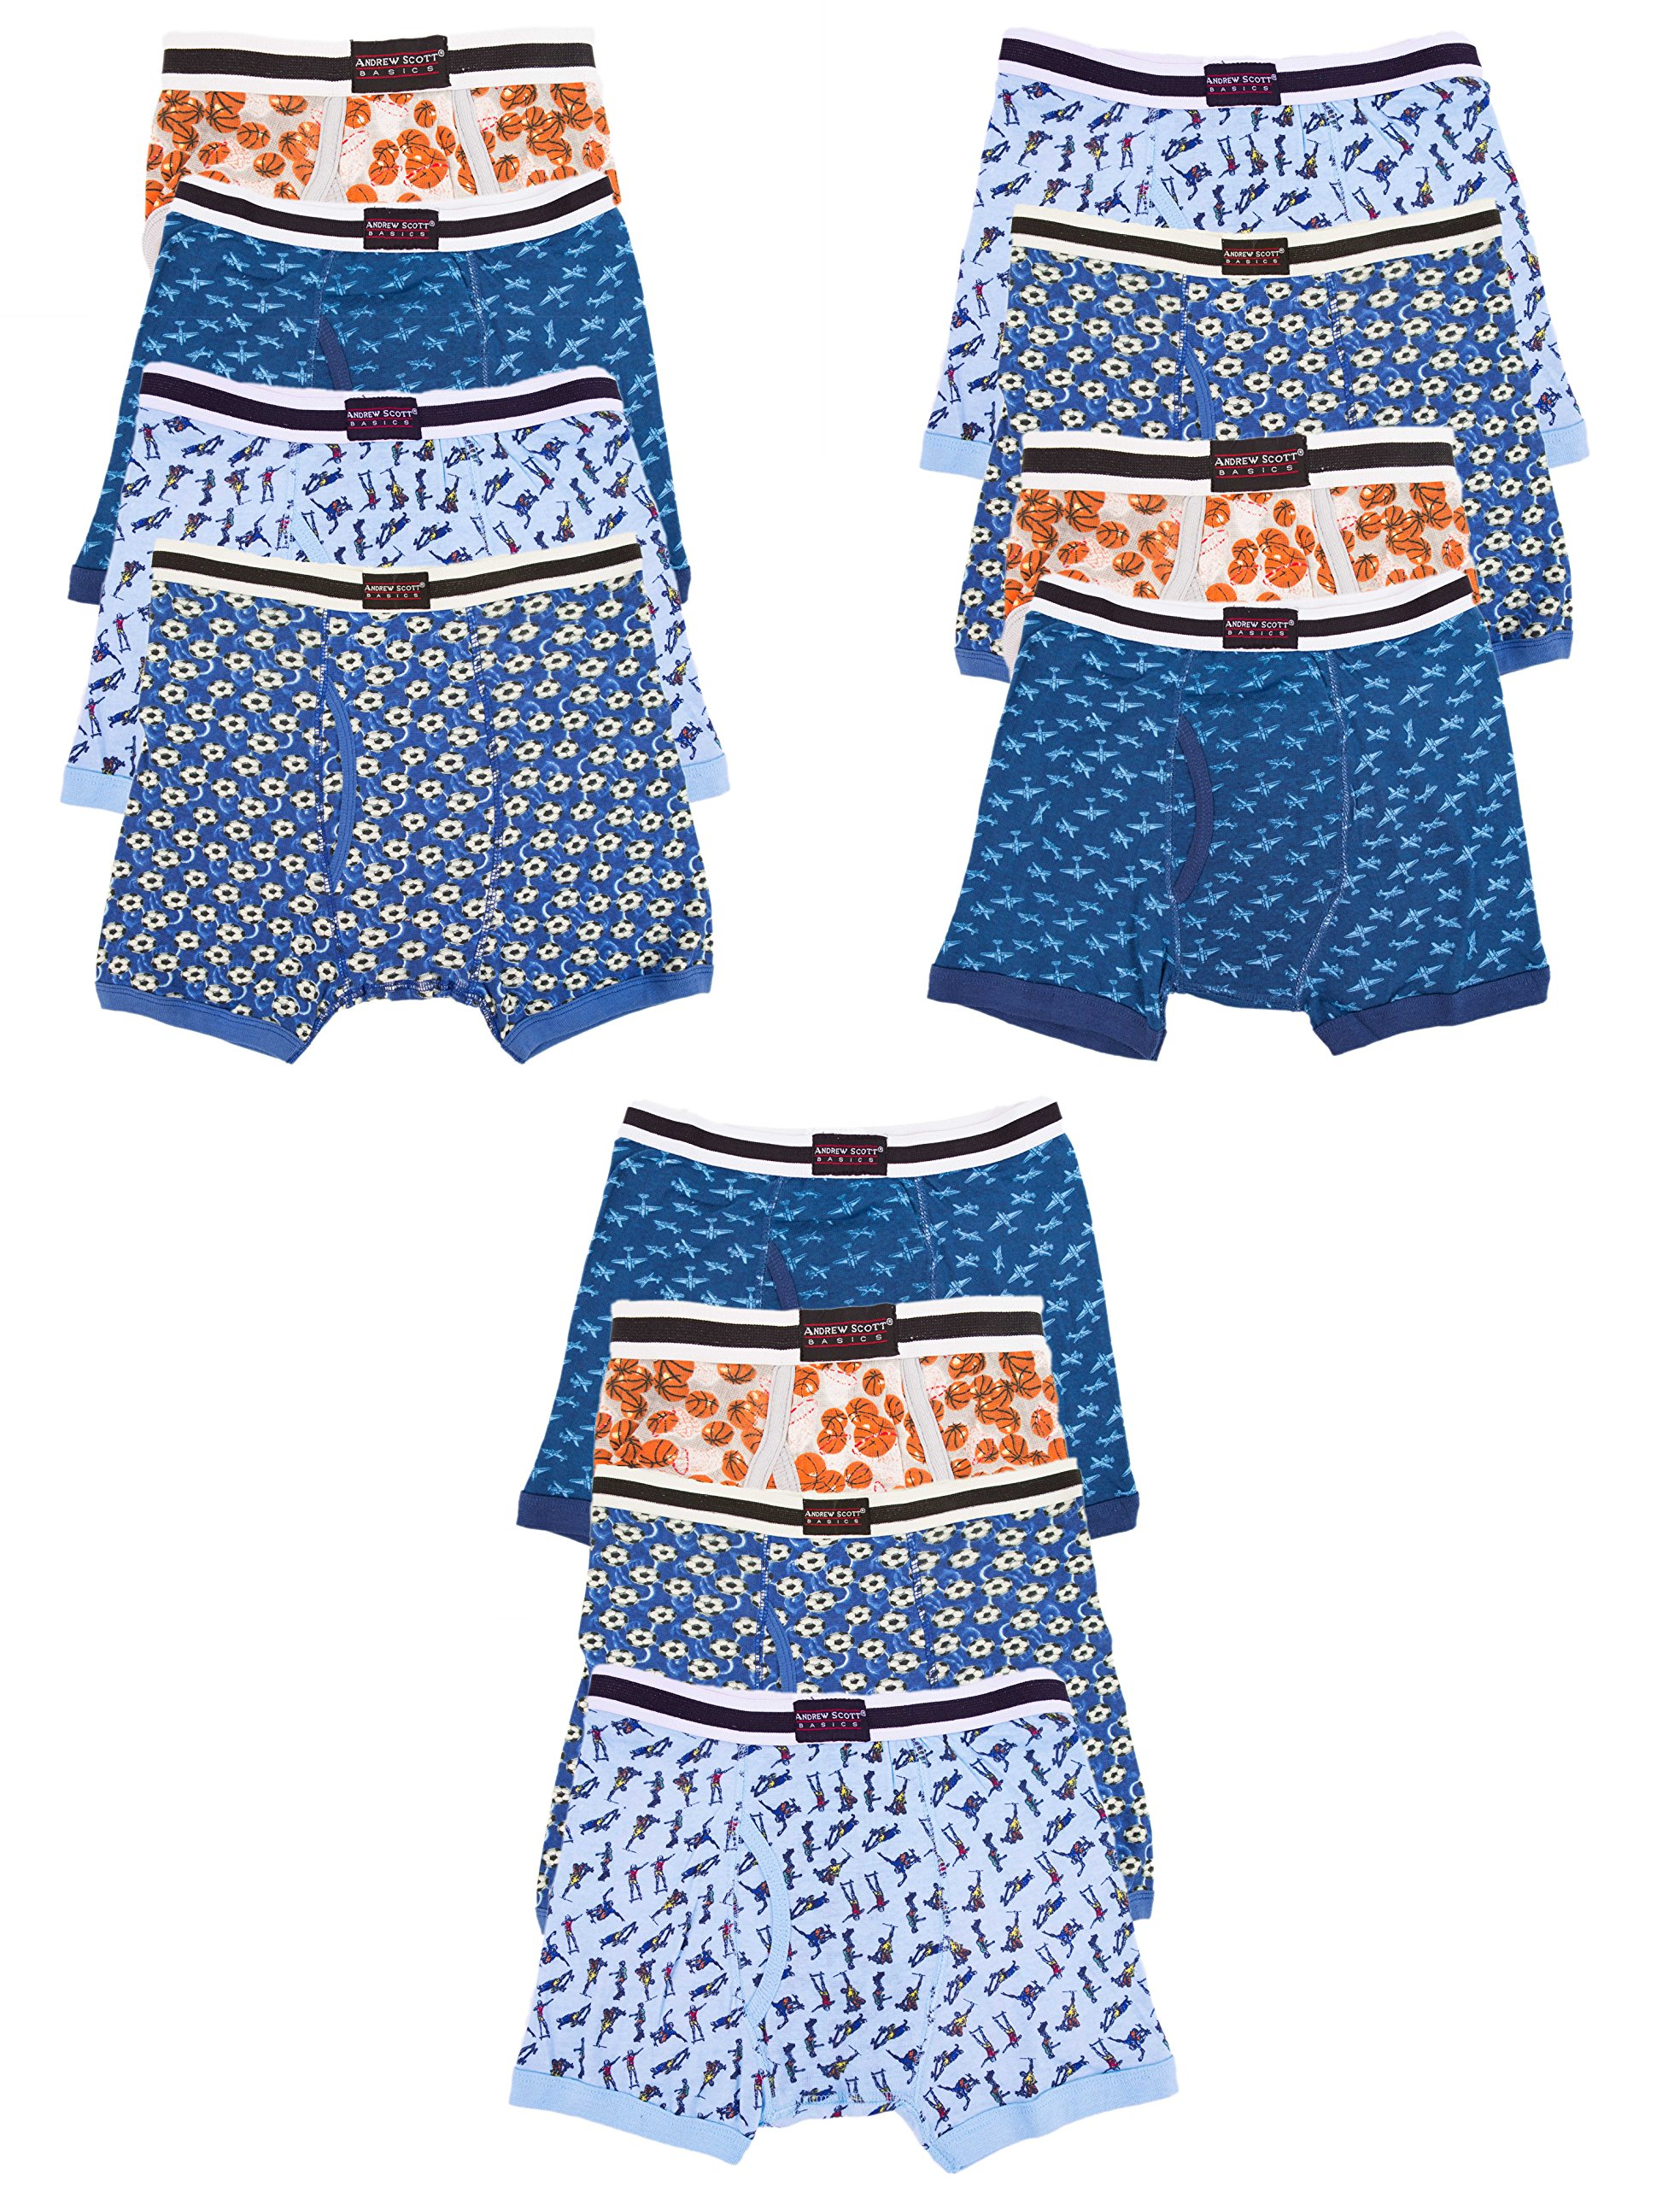 Andrew Scott Boys 12 Pack Boxer Briefs for Toddlers and Boys in Assorted Prints (Medium/ 10-12, Assorted Prints)